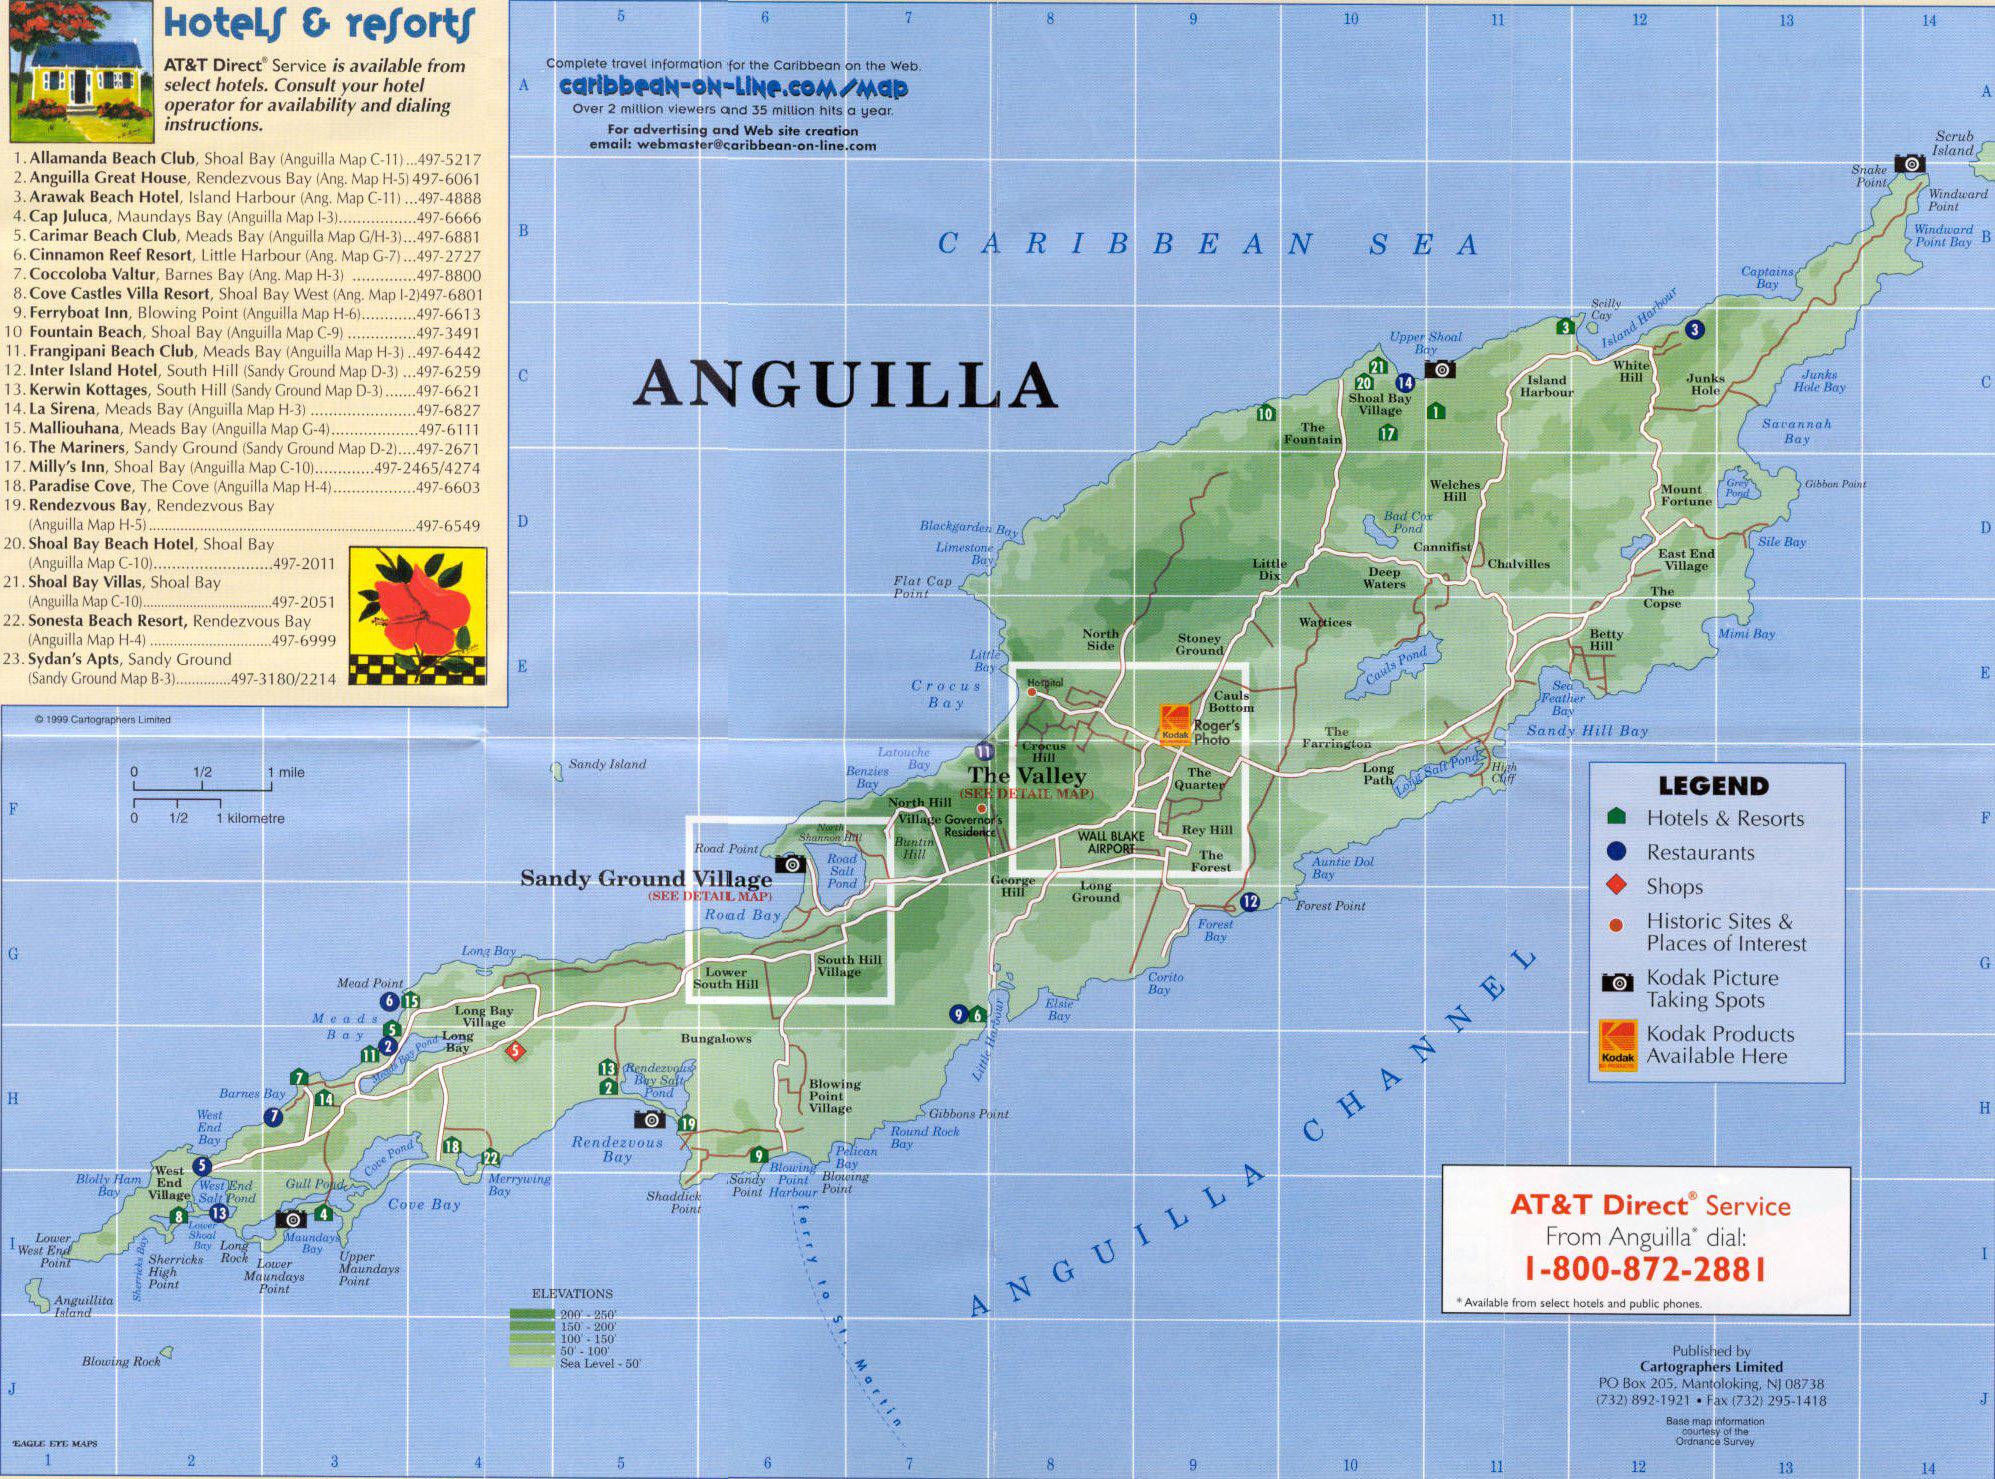 Map Of Caribbean Islands Anguilla My Blog - Caribbean anguilla map